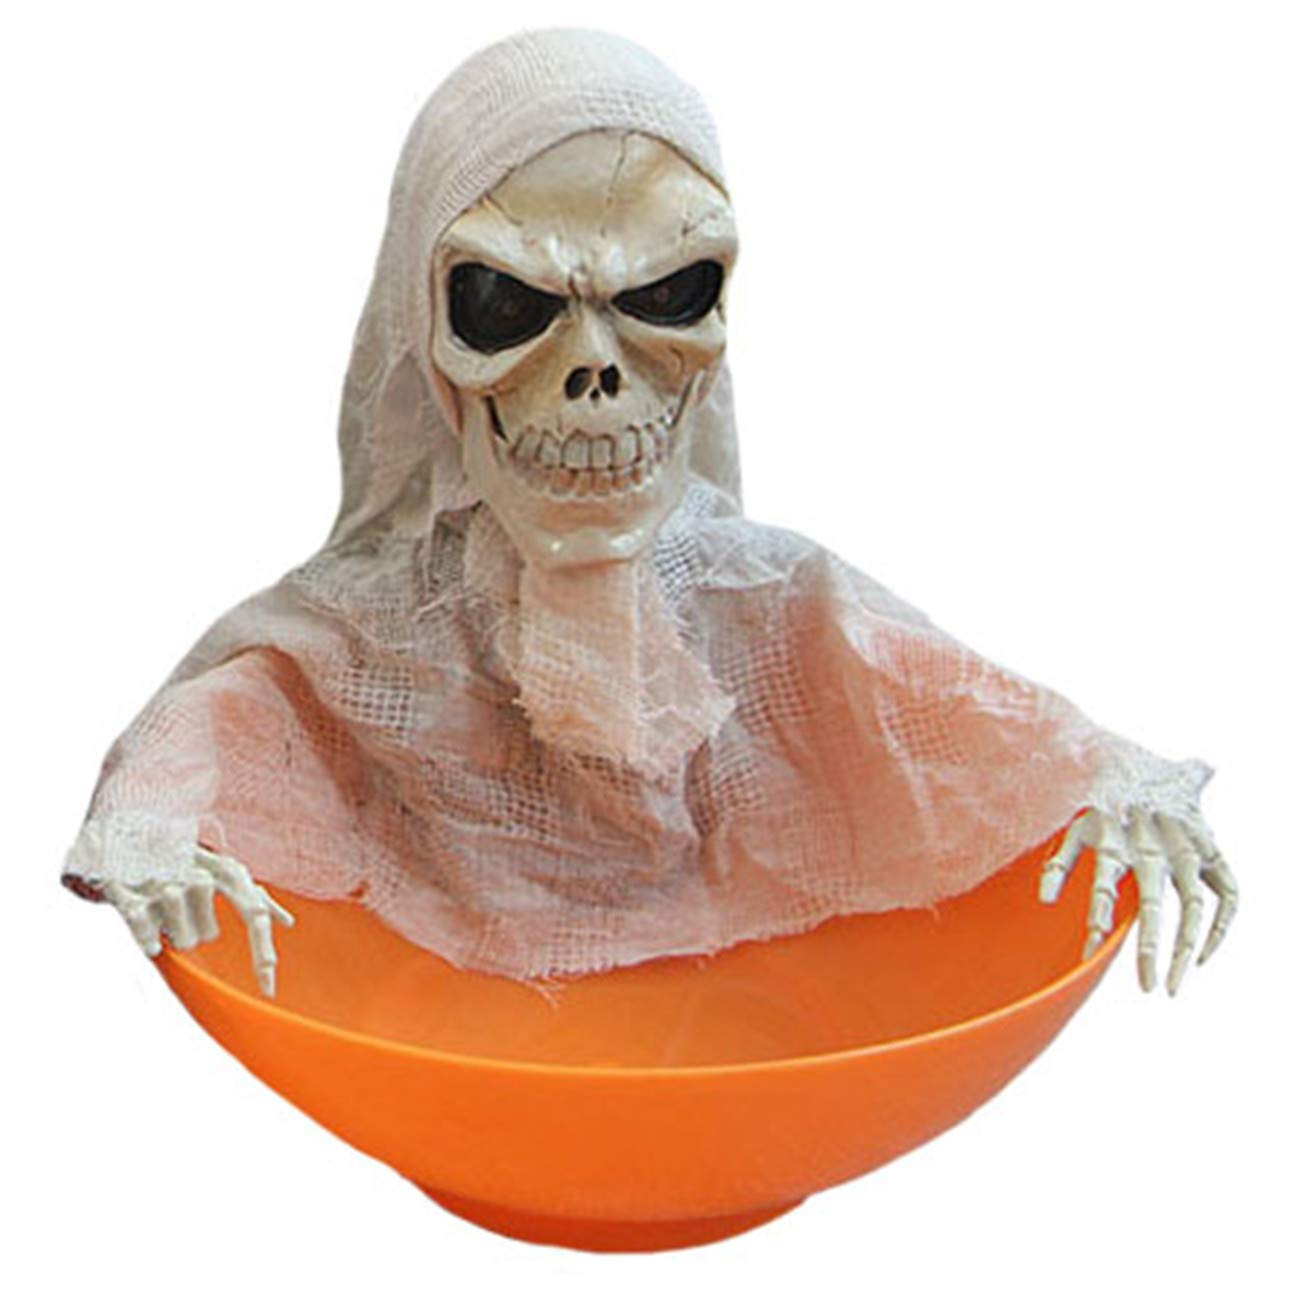 Halloween Decoration Ghost Candy Bowl, Haunted House Supply, Animated Candy Bowl, Halloween Party Decor